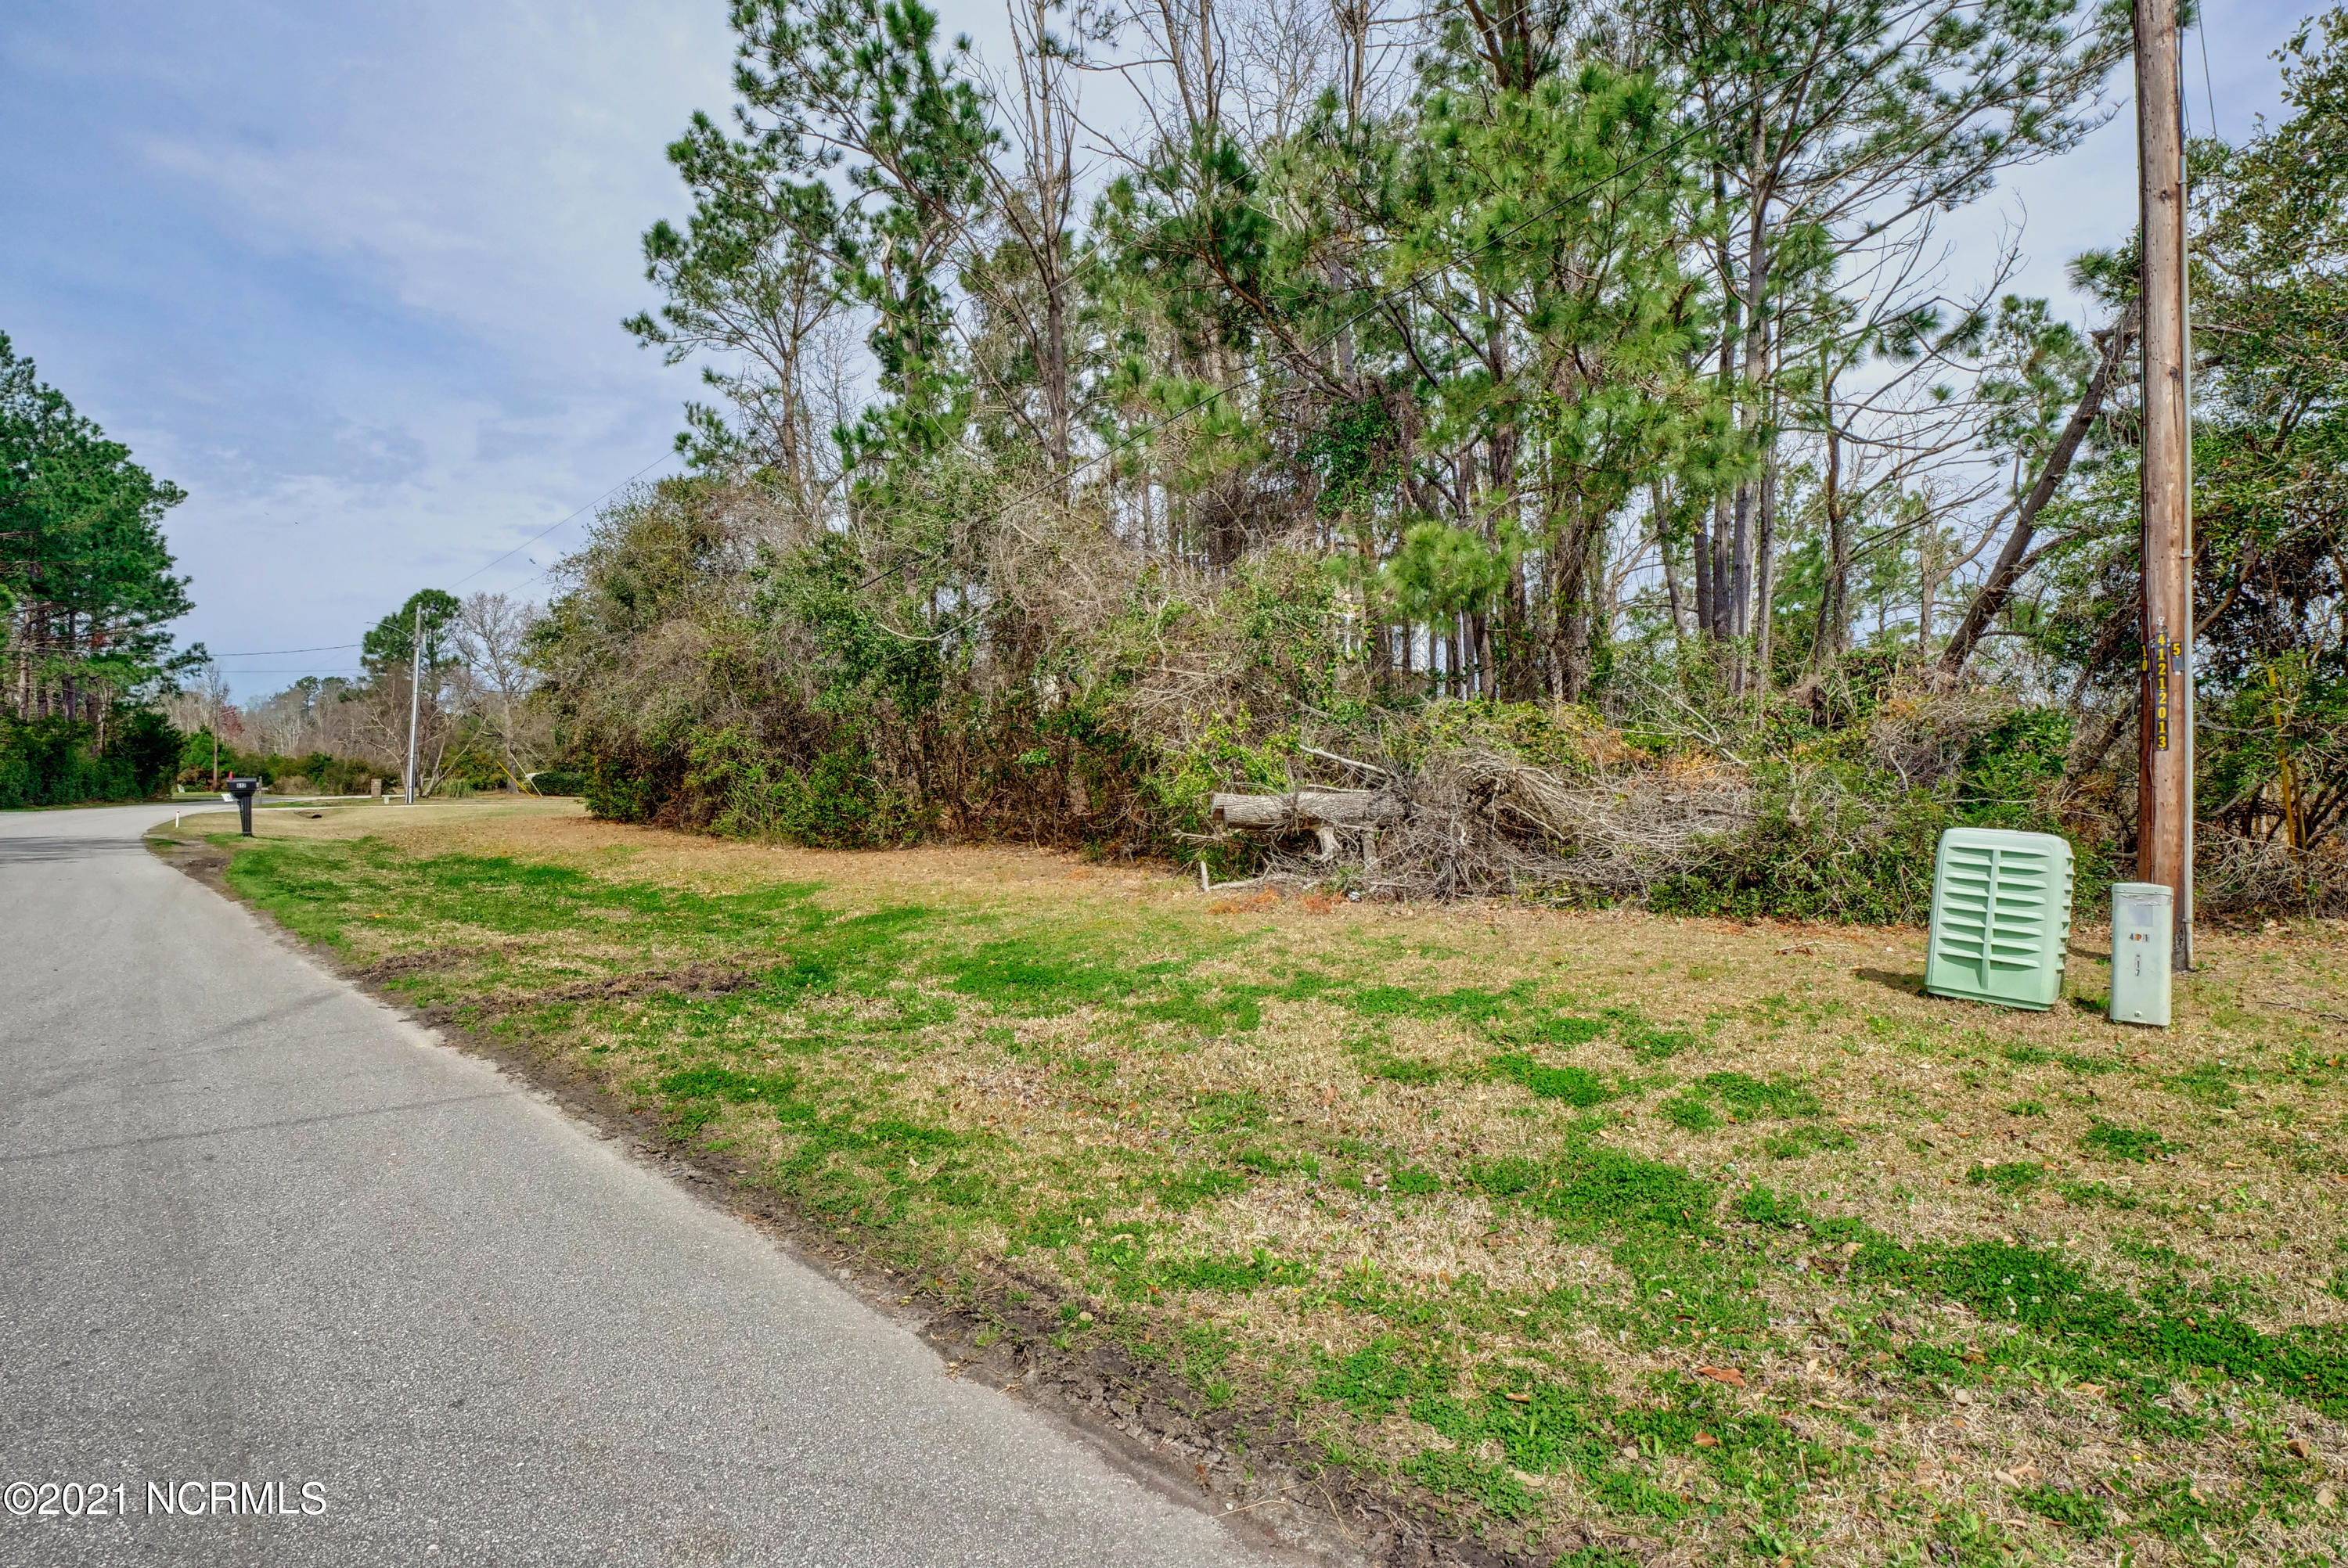 611 Chadwick Shores Drive, Sneads Ferry, North Carolina 28460, ,Residential land,For sale,Chadwick Shores,100263508